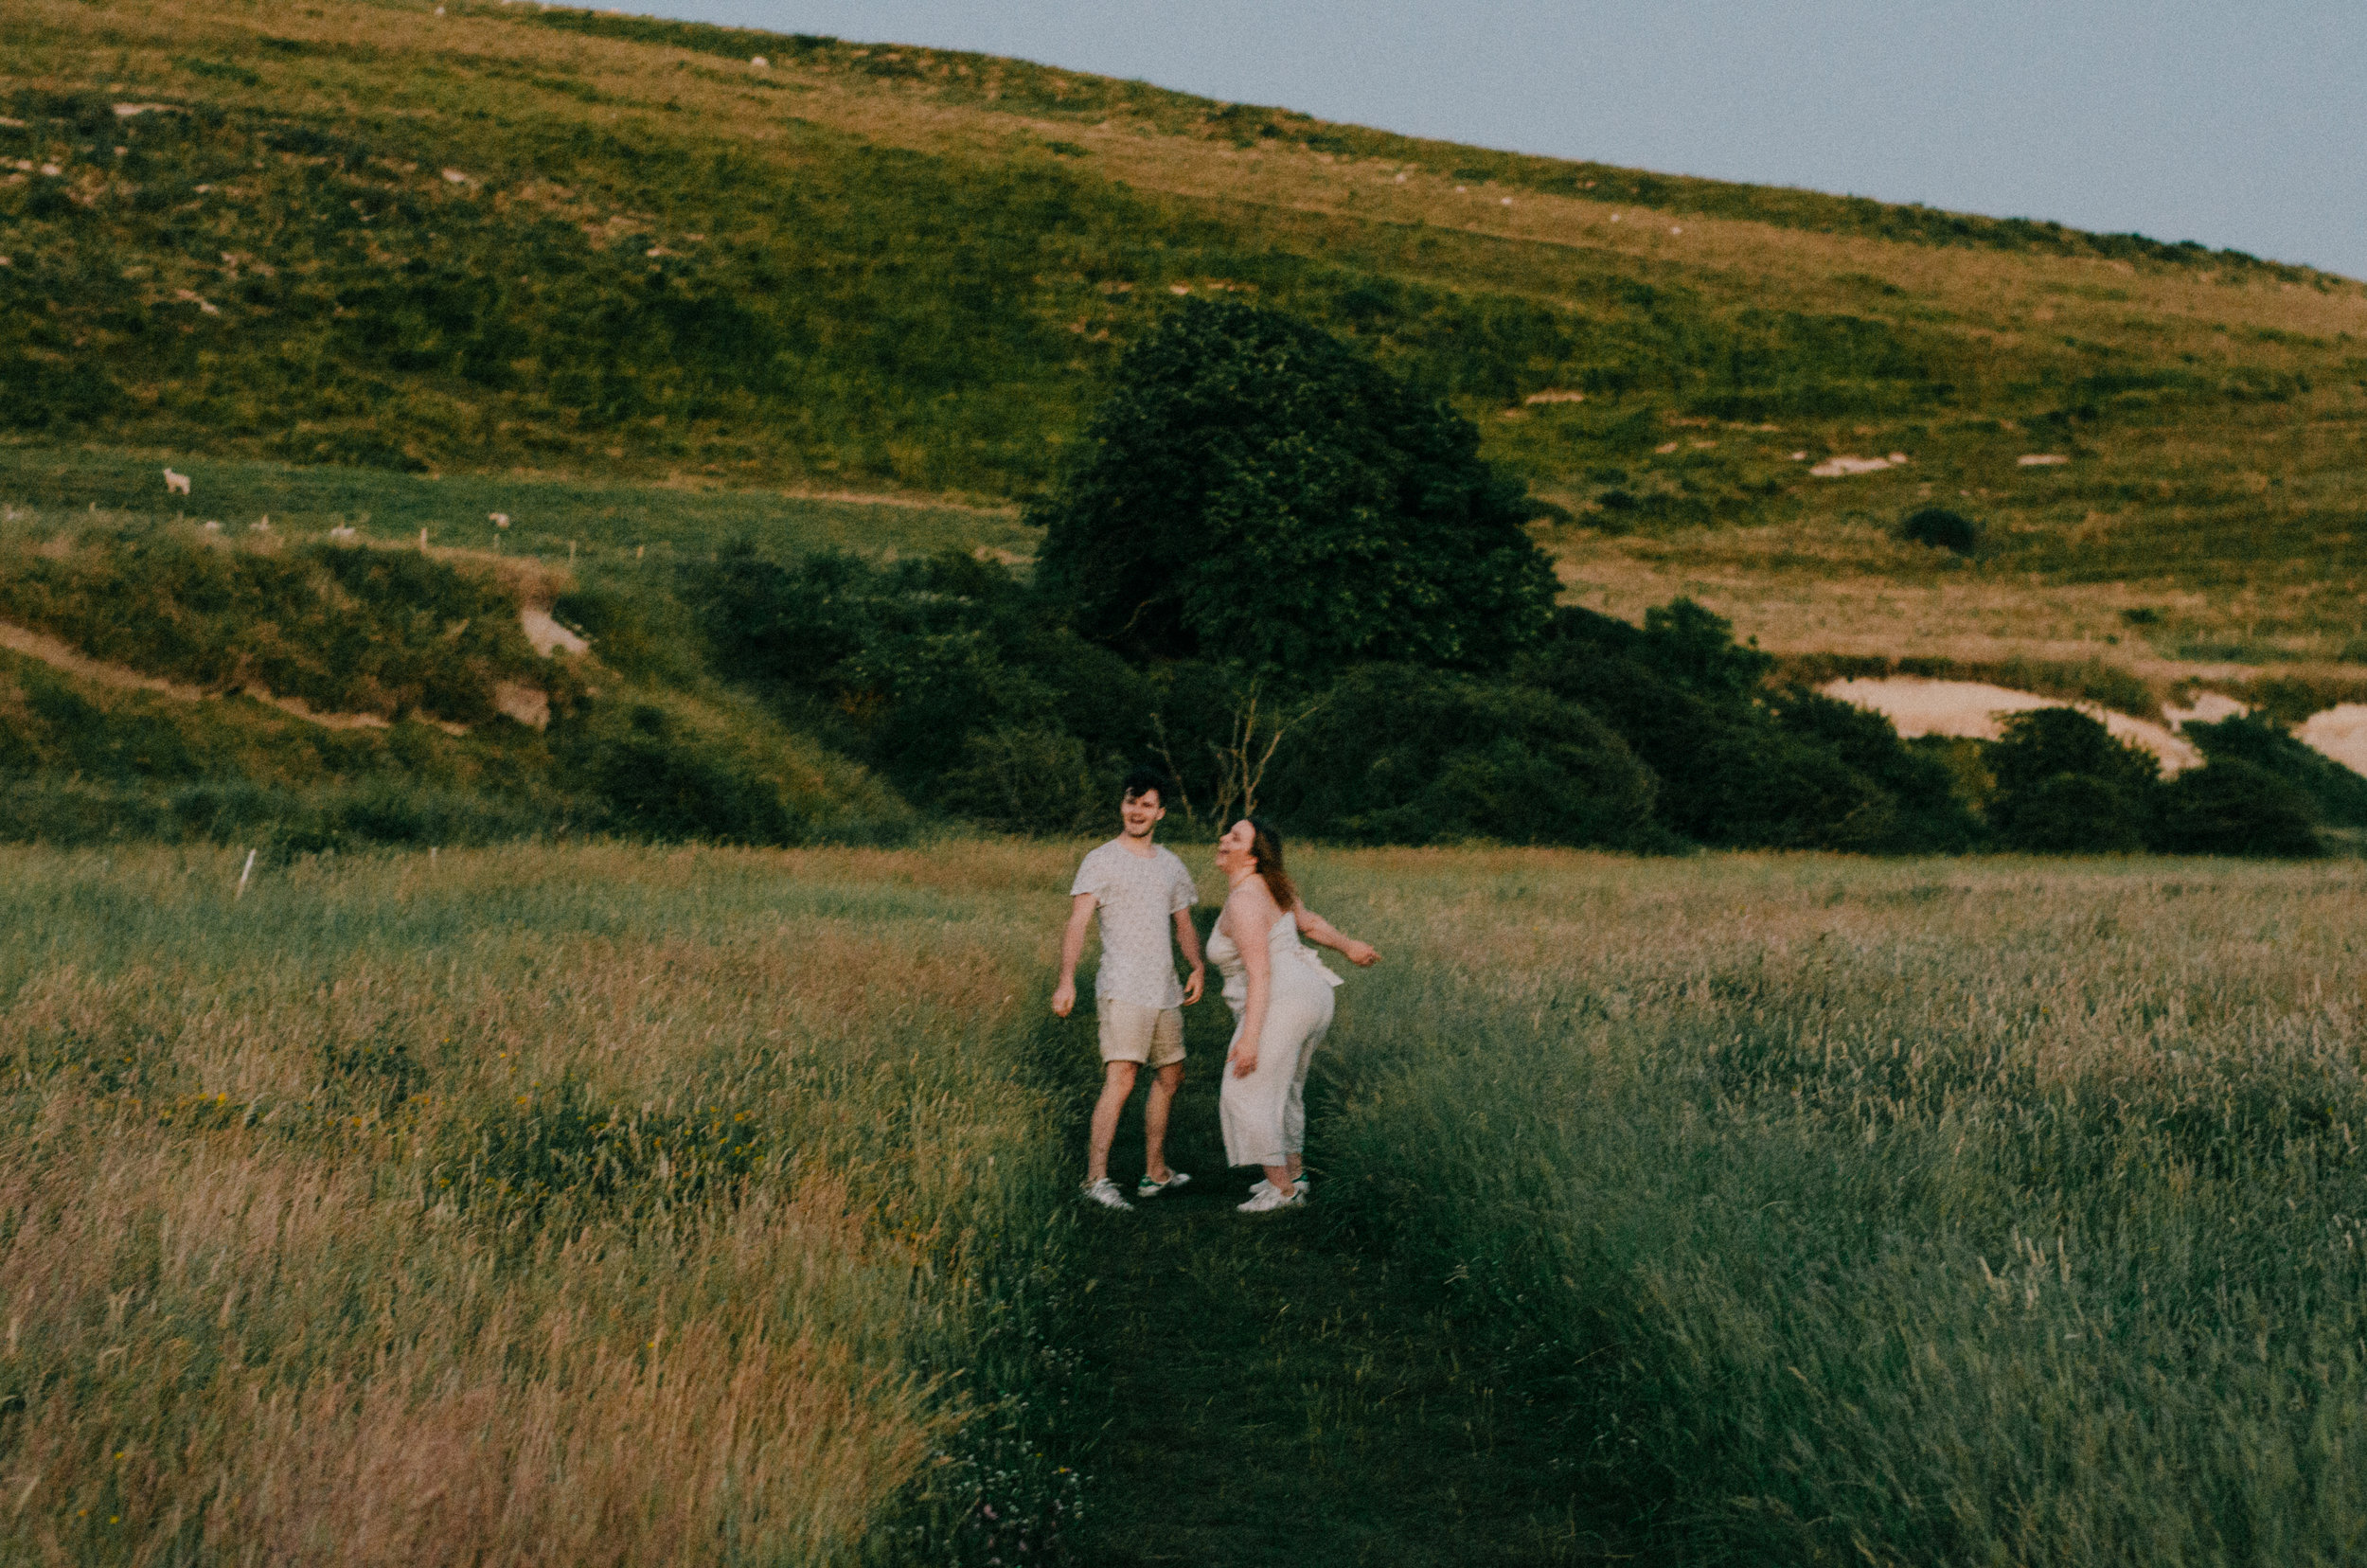 Rebecca & Dougie - Cuckmere Haven - Couple Session - Aiste Saulyte Photography-188.jpg